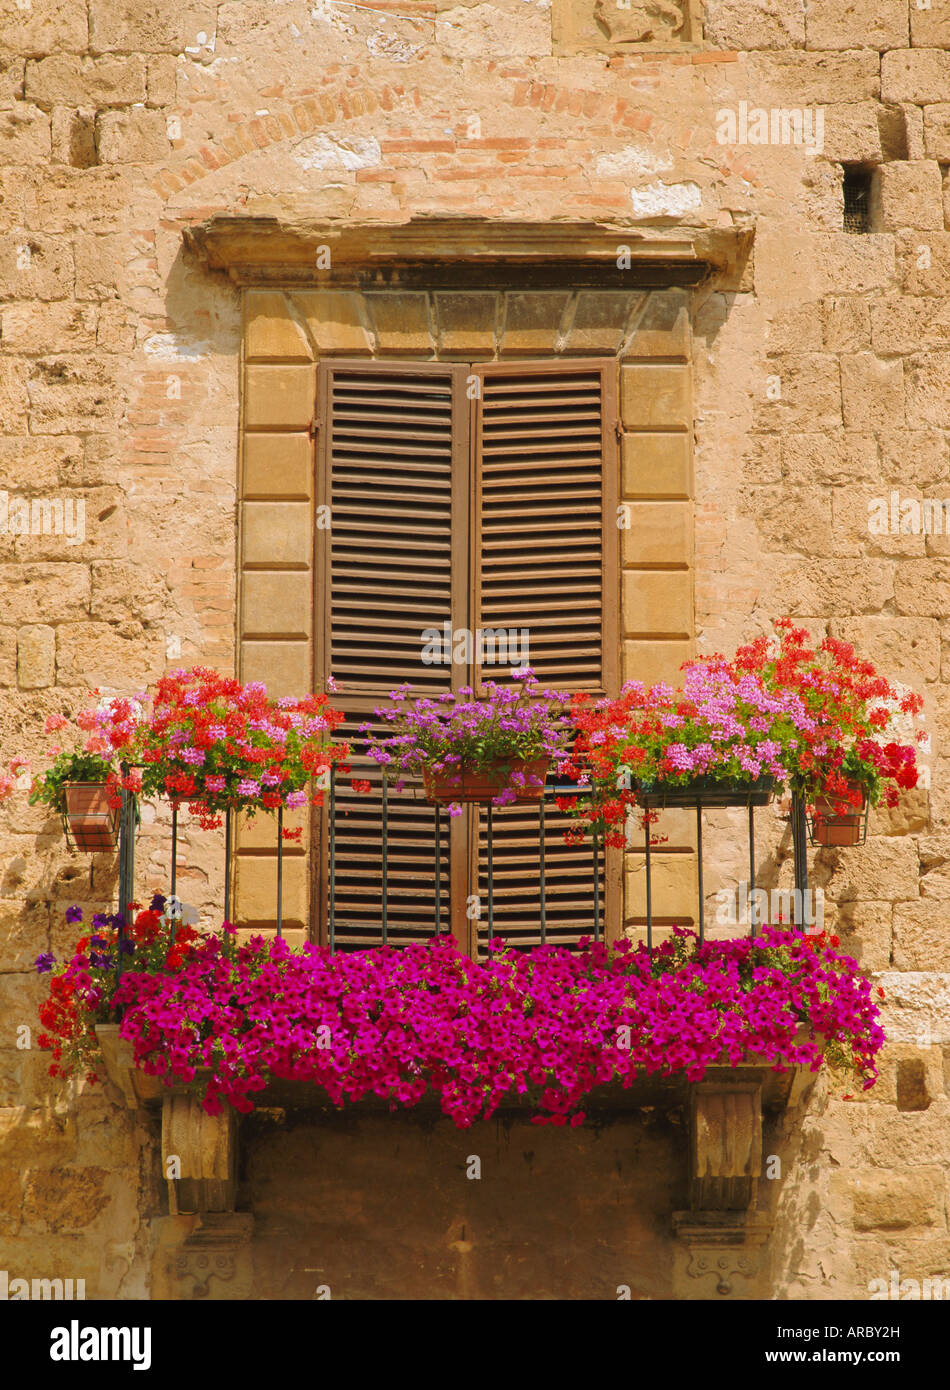 Flower covered balcony, Colle di Val d'Elsa, Tuscany, Italy - Stock Image